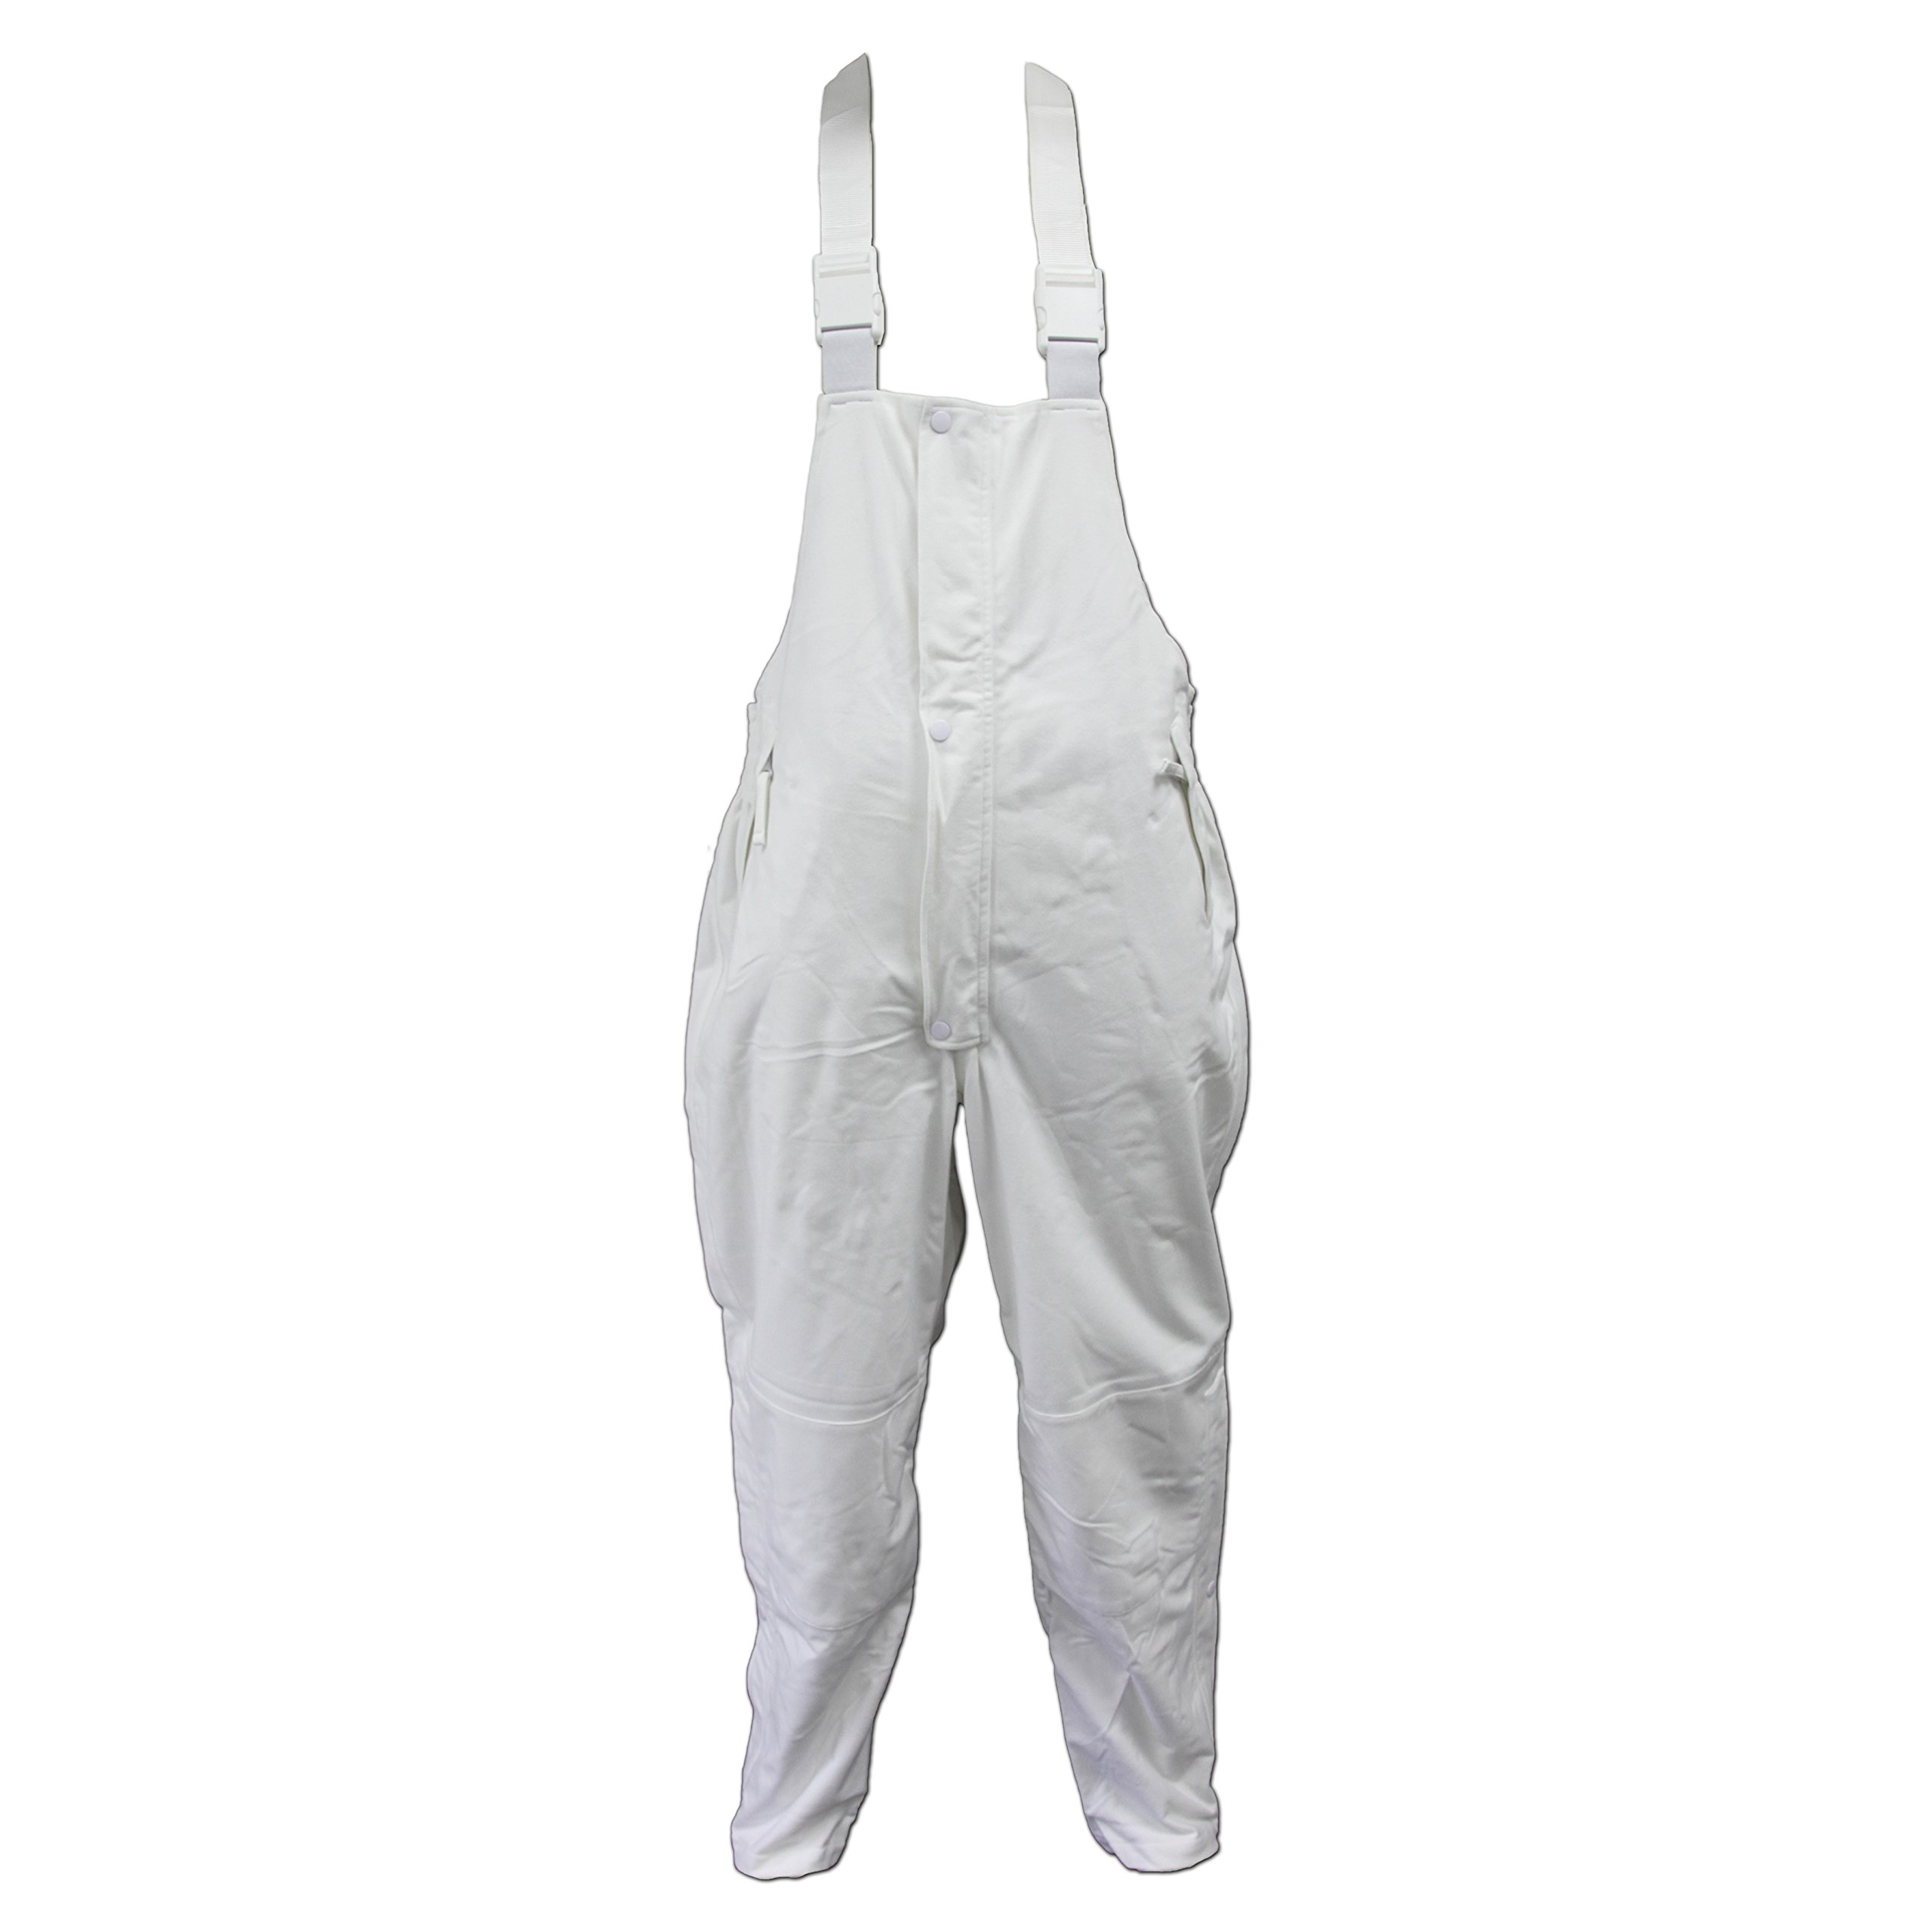 Wildfowler Outfitter Men's White Water Proof Bibs by Wildfowler